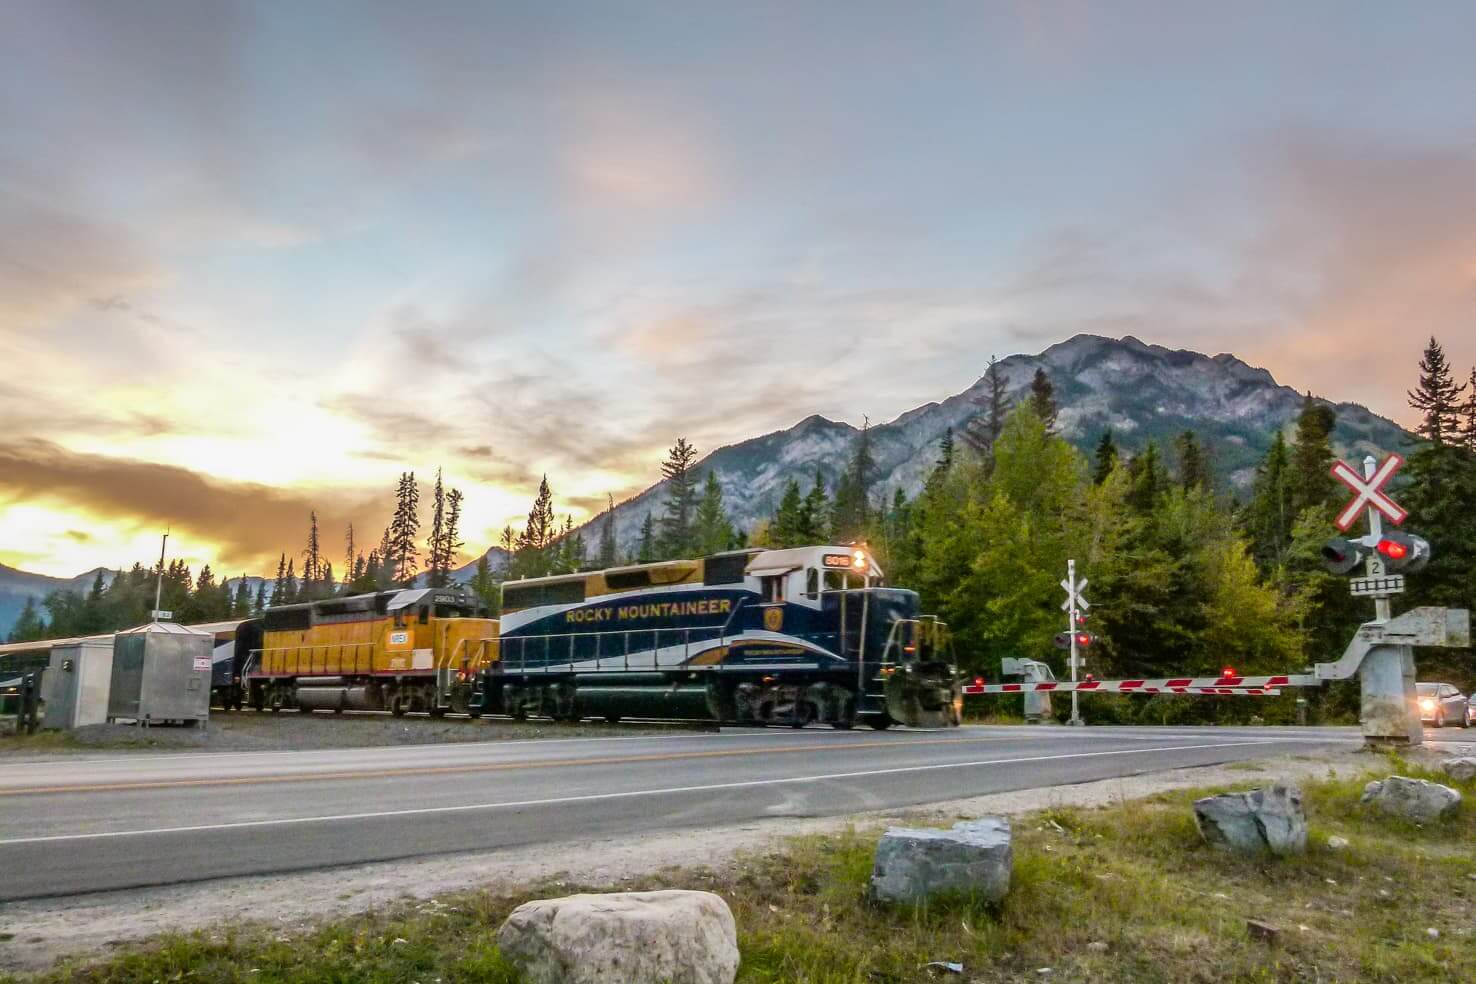 100 best things to do in Banff National Park, Canada - See the Rocky Mountaineer train